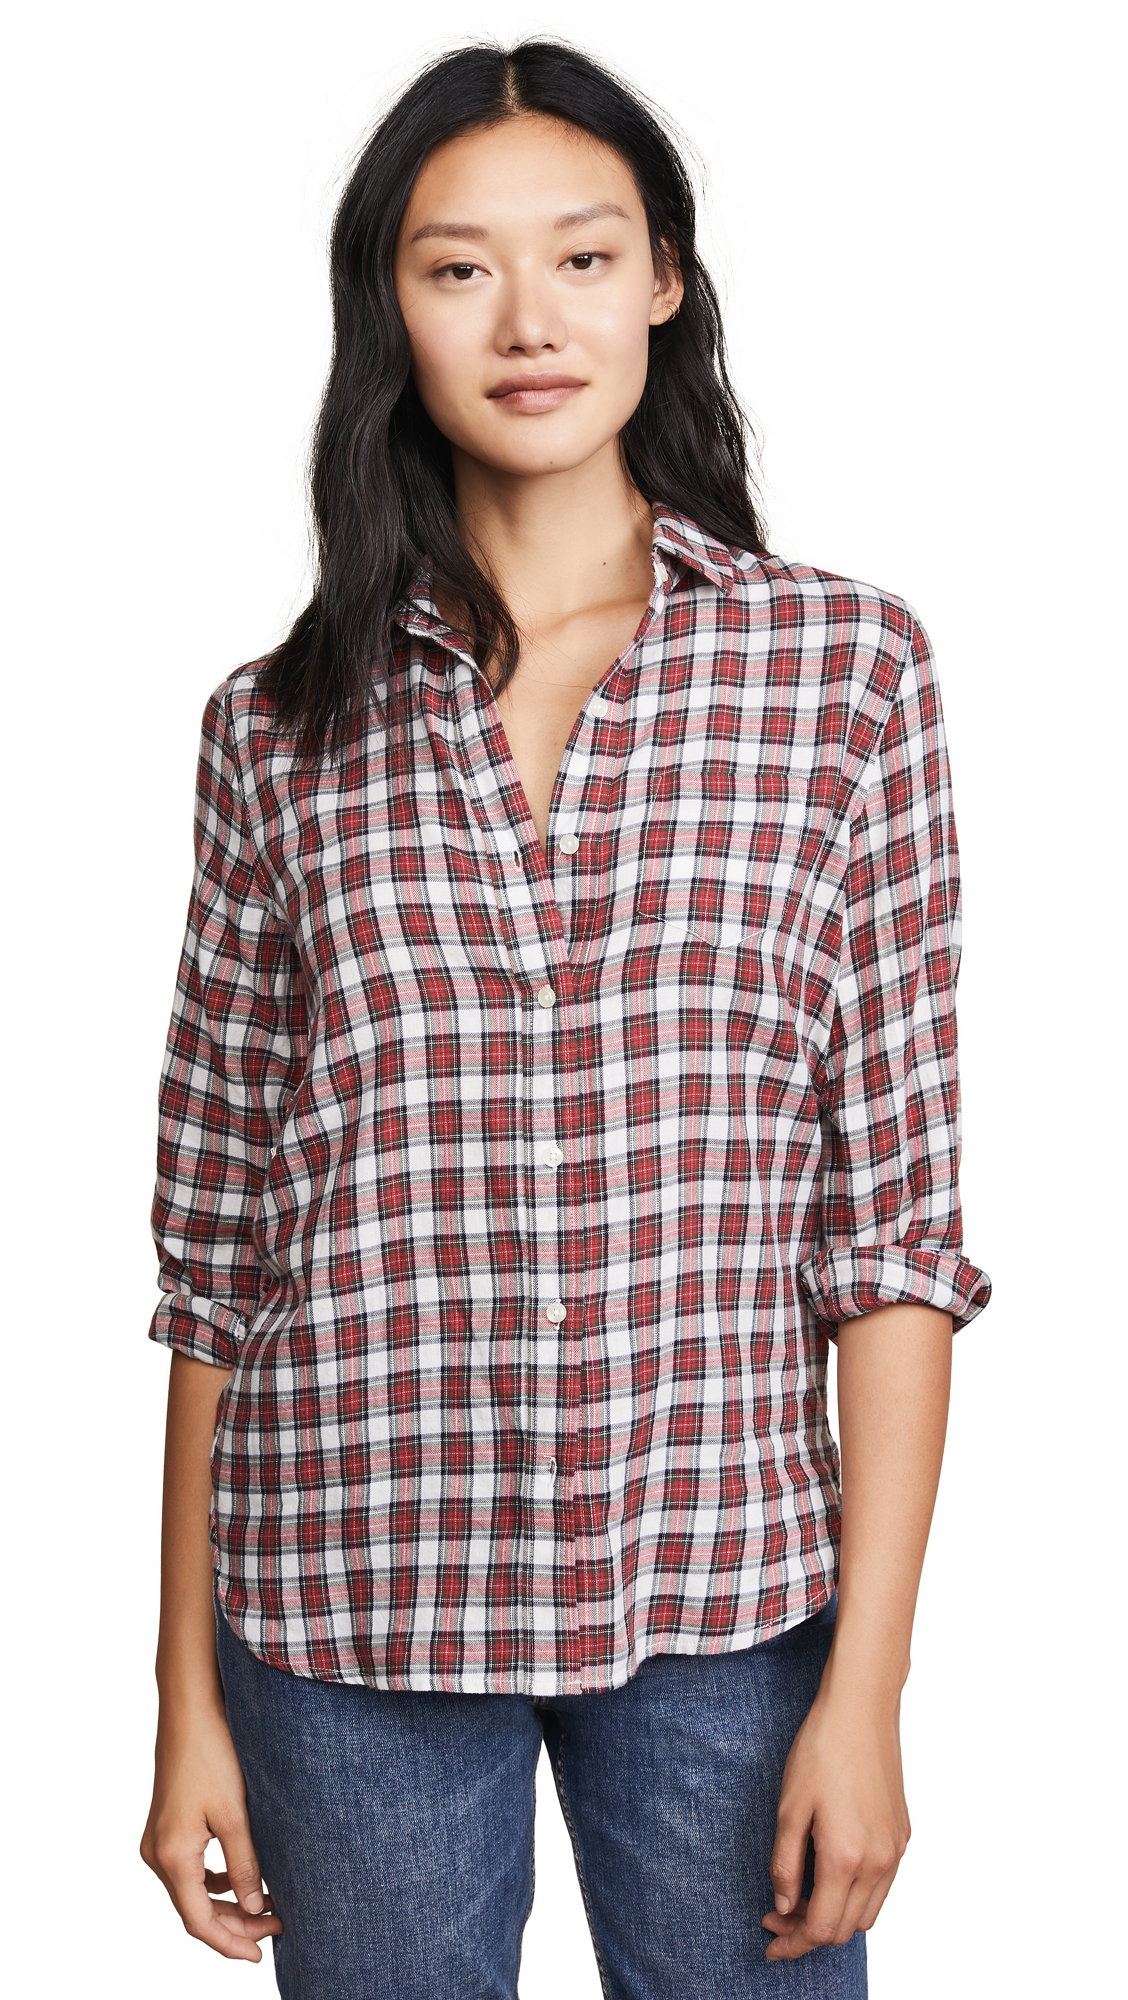 BIRDS OF PARADIS The Grace Classic Shirt in Red Plaid